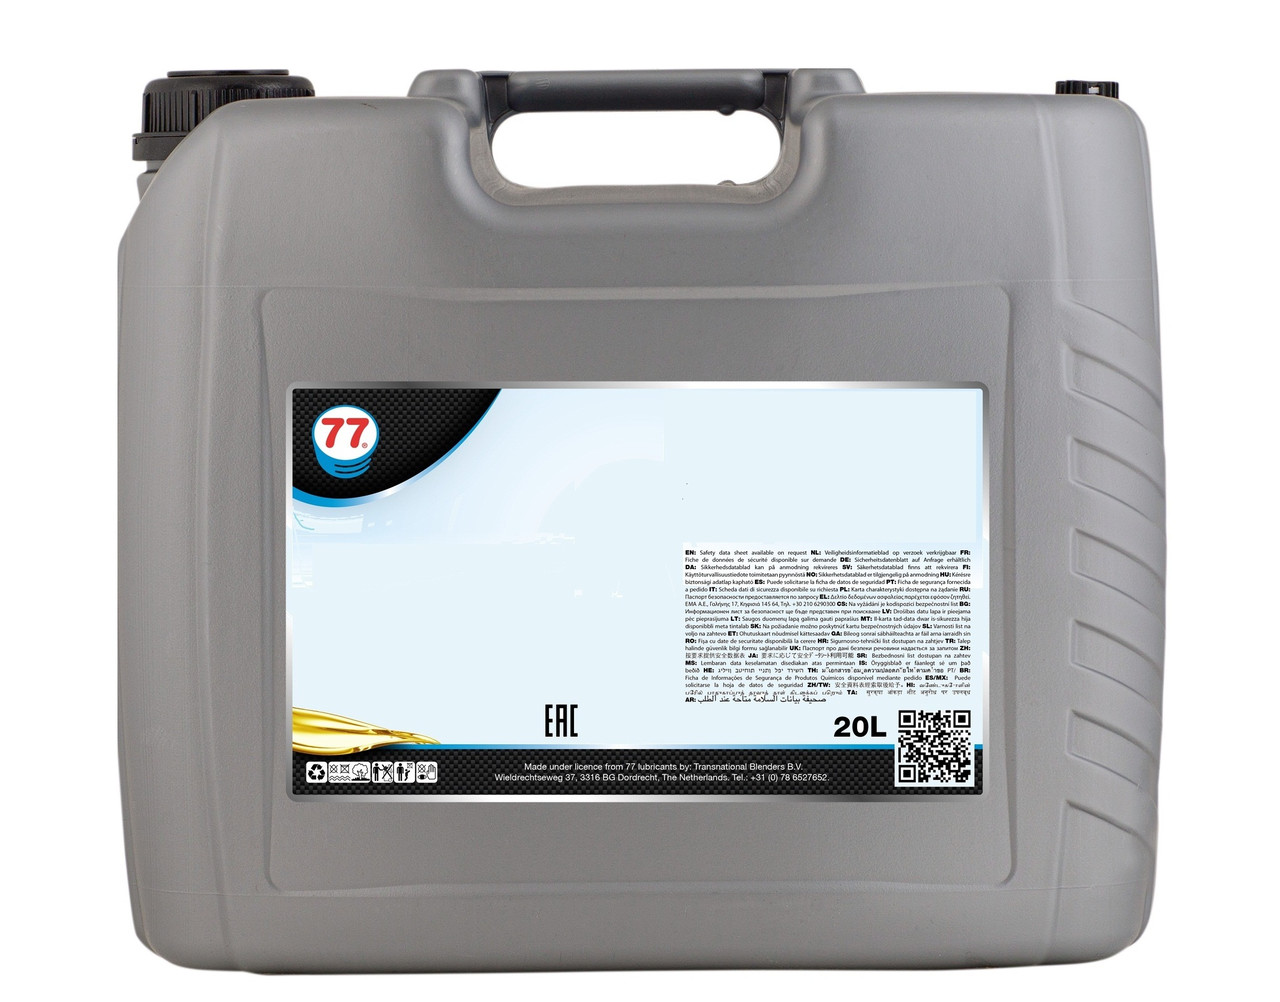 77 ENGINE OIL SPECIAL UHPD 10W-40 синтетическое моторное масло